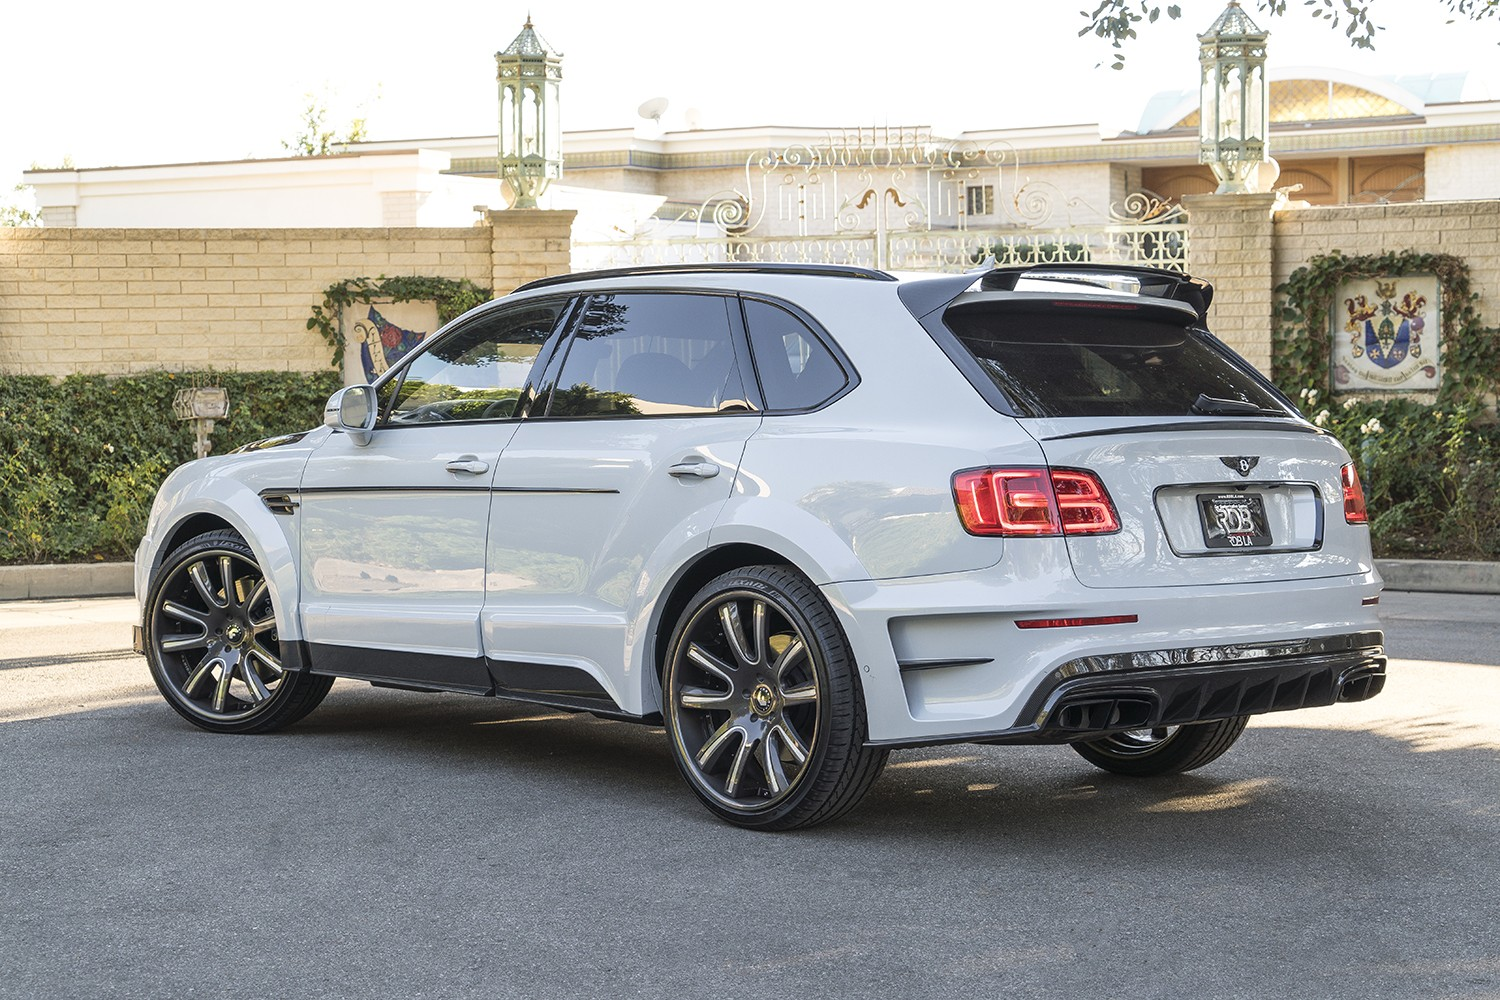 Bentley Bentayga Gets Mansory Body Kit And Forgiato Wheels Autoevolution